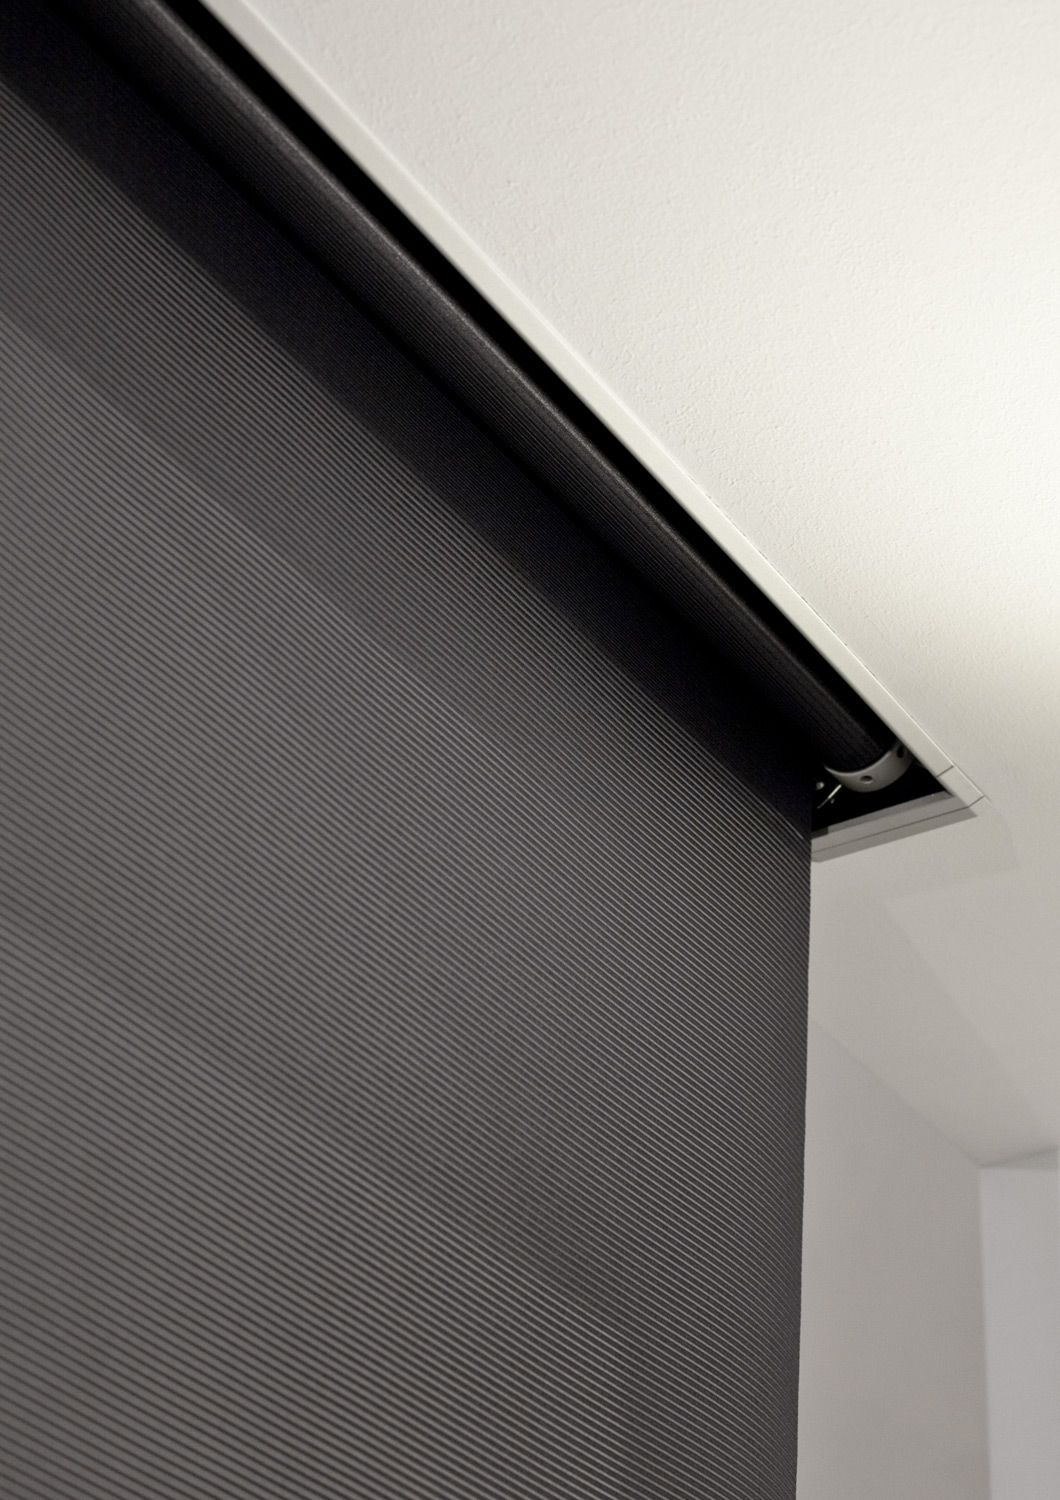 Groove The Roller Blind Hides Mycore Curtains With Blinds